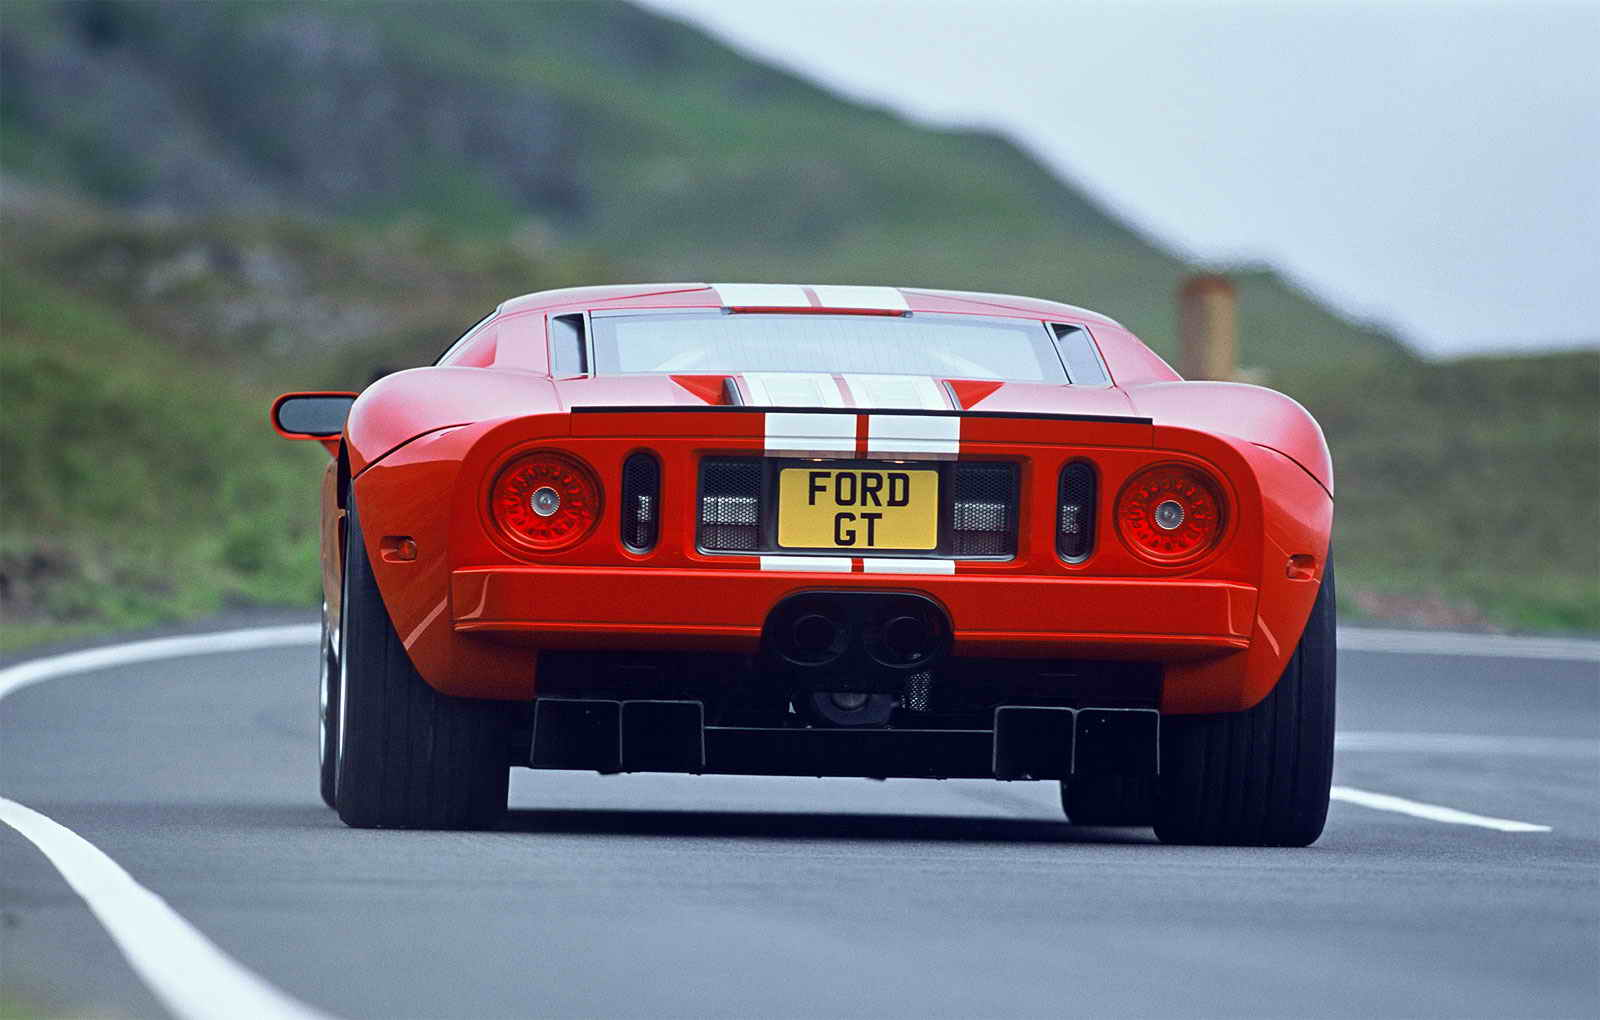 Ford Gt Top Speed